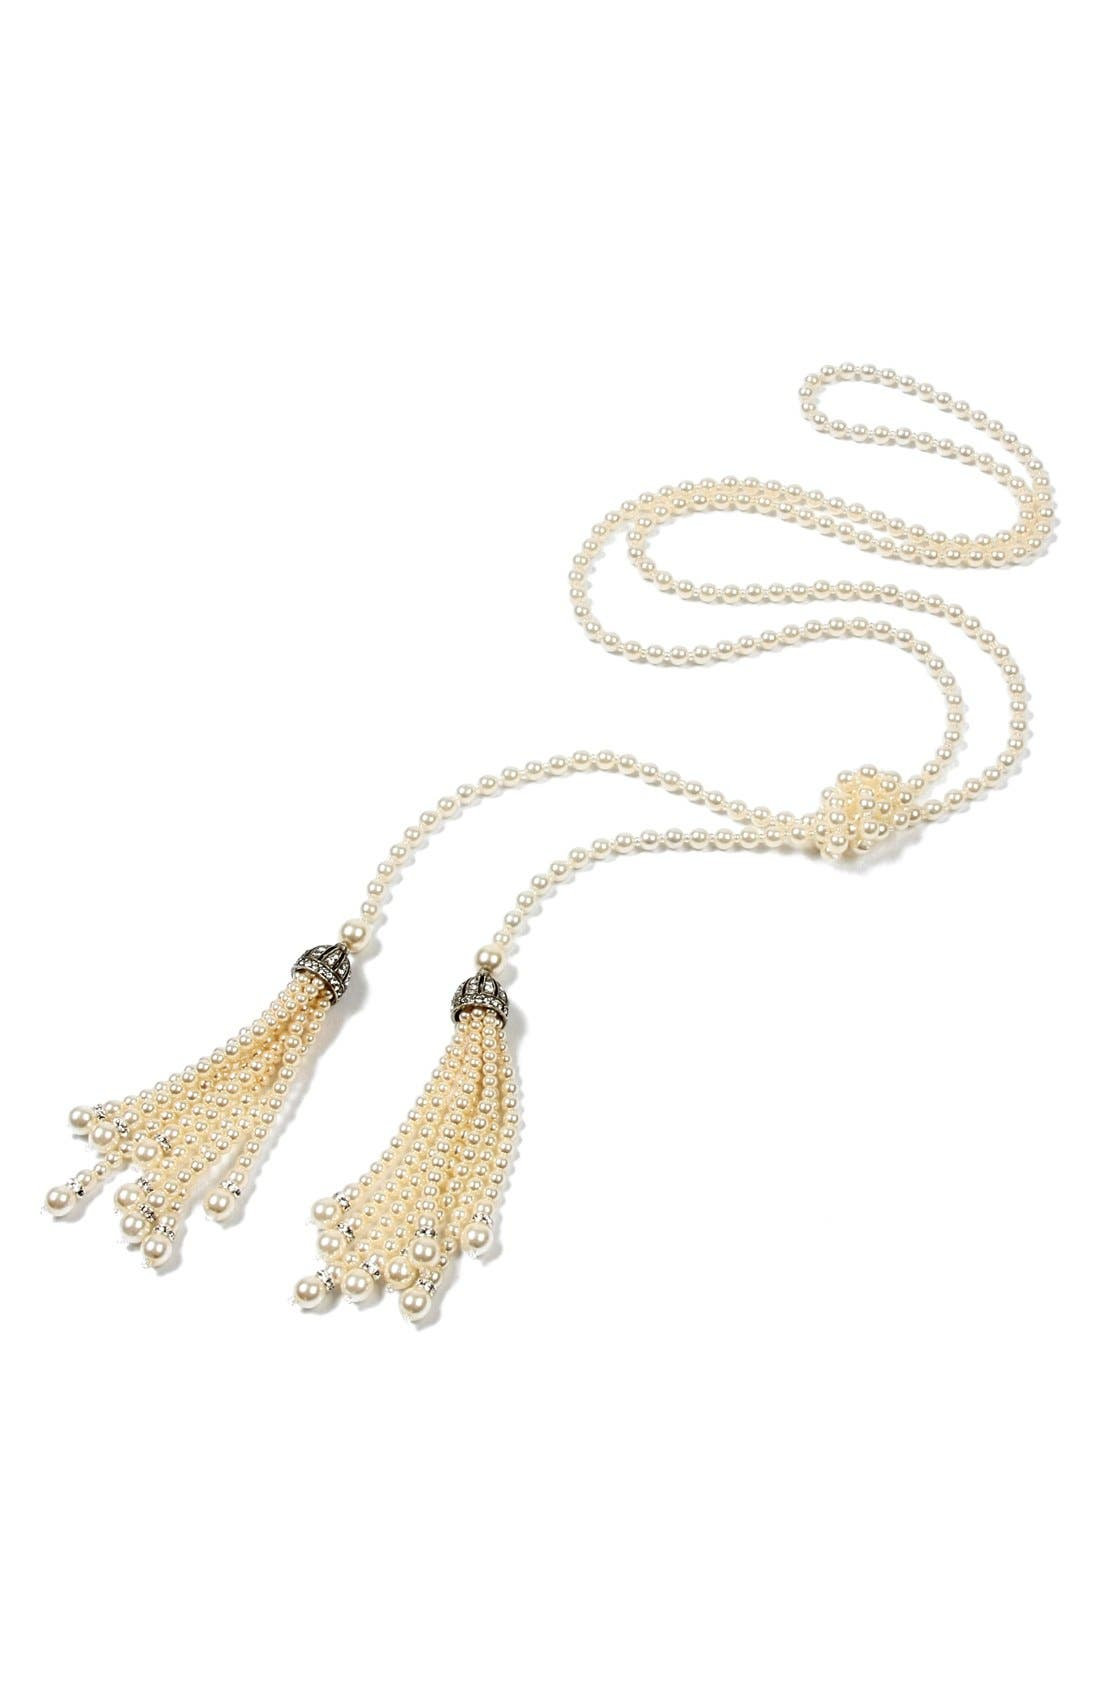 Main Image - Ben-Amun Glass Pearl Tassel Necklace